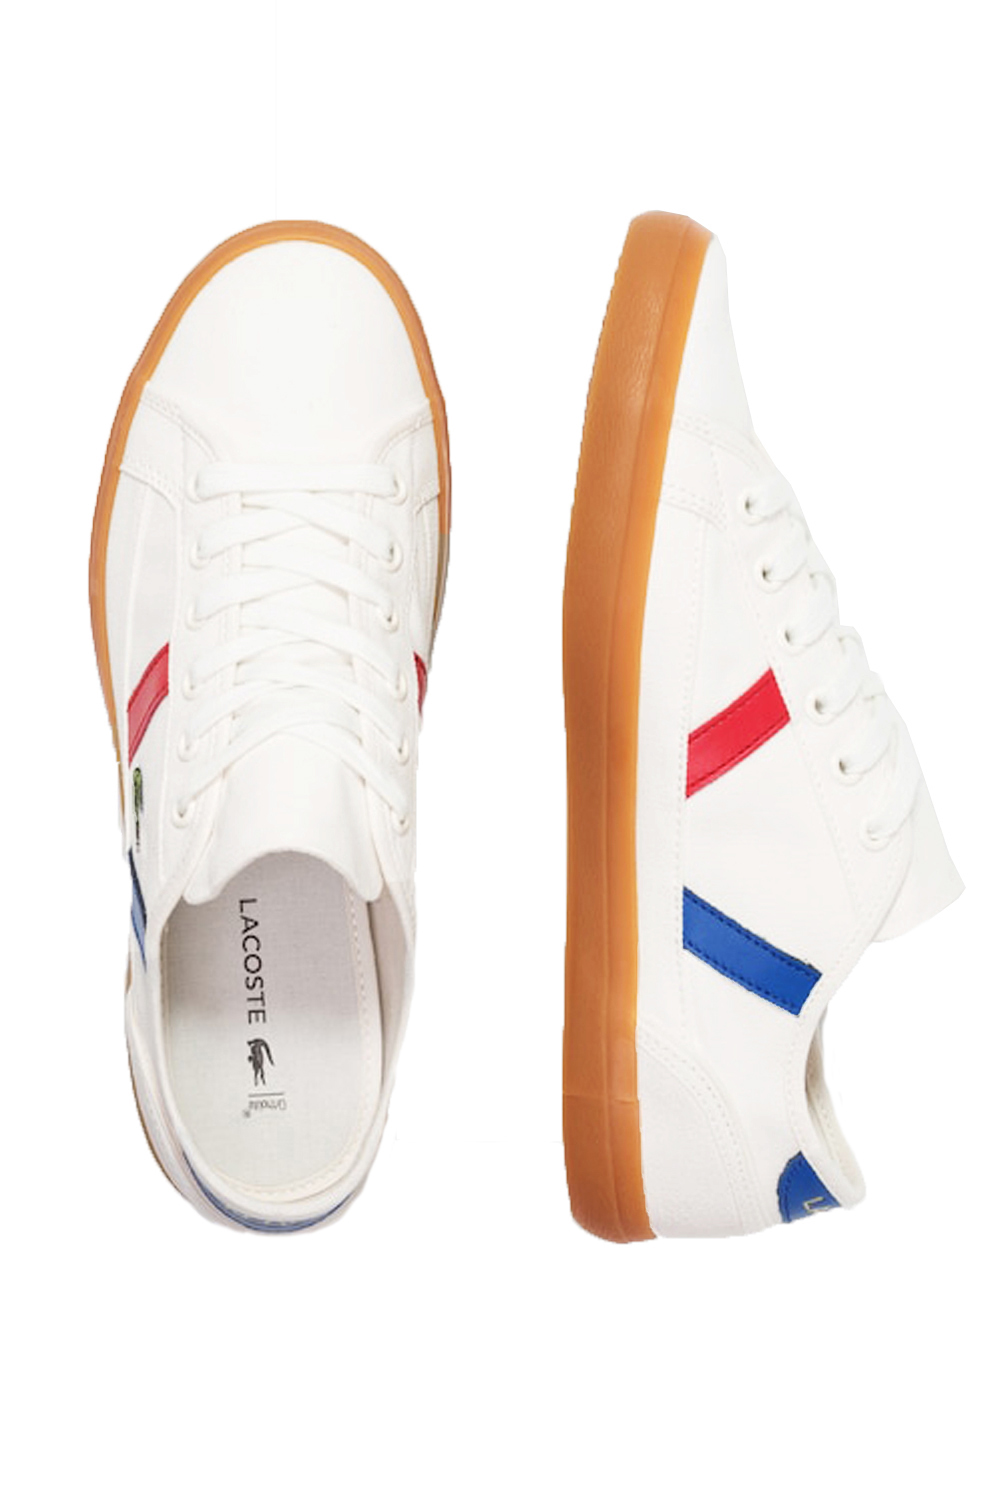 Lacoste-Mens-Sideline-119-Lace-Ups-Leather-Canvas-White-Trainers-Casual-Shoes thumbnail 5